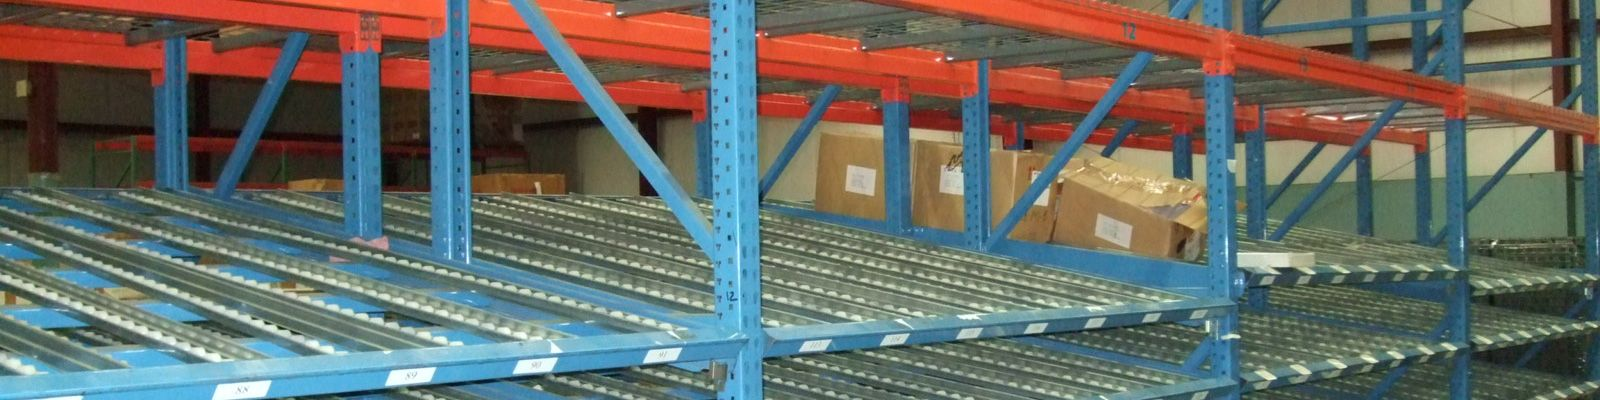 We Are Houston S Pallet Racking And Shelving Experts We Buy And Sell New And Used Warehouse R In 2020 Pallet Rack Warehouse Pallet Racking Material Handling Equipment